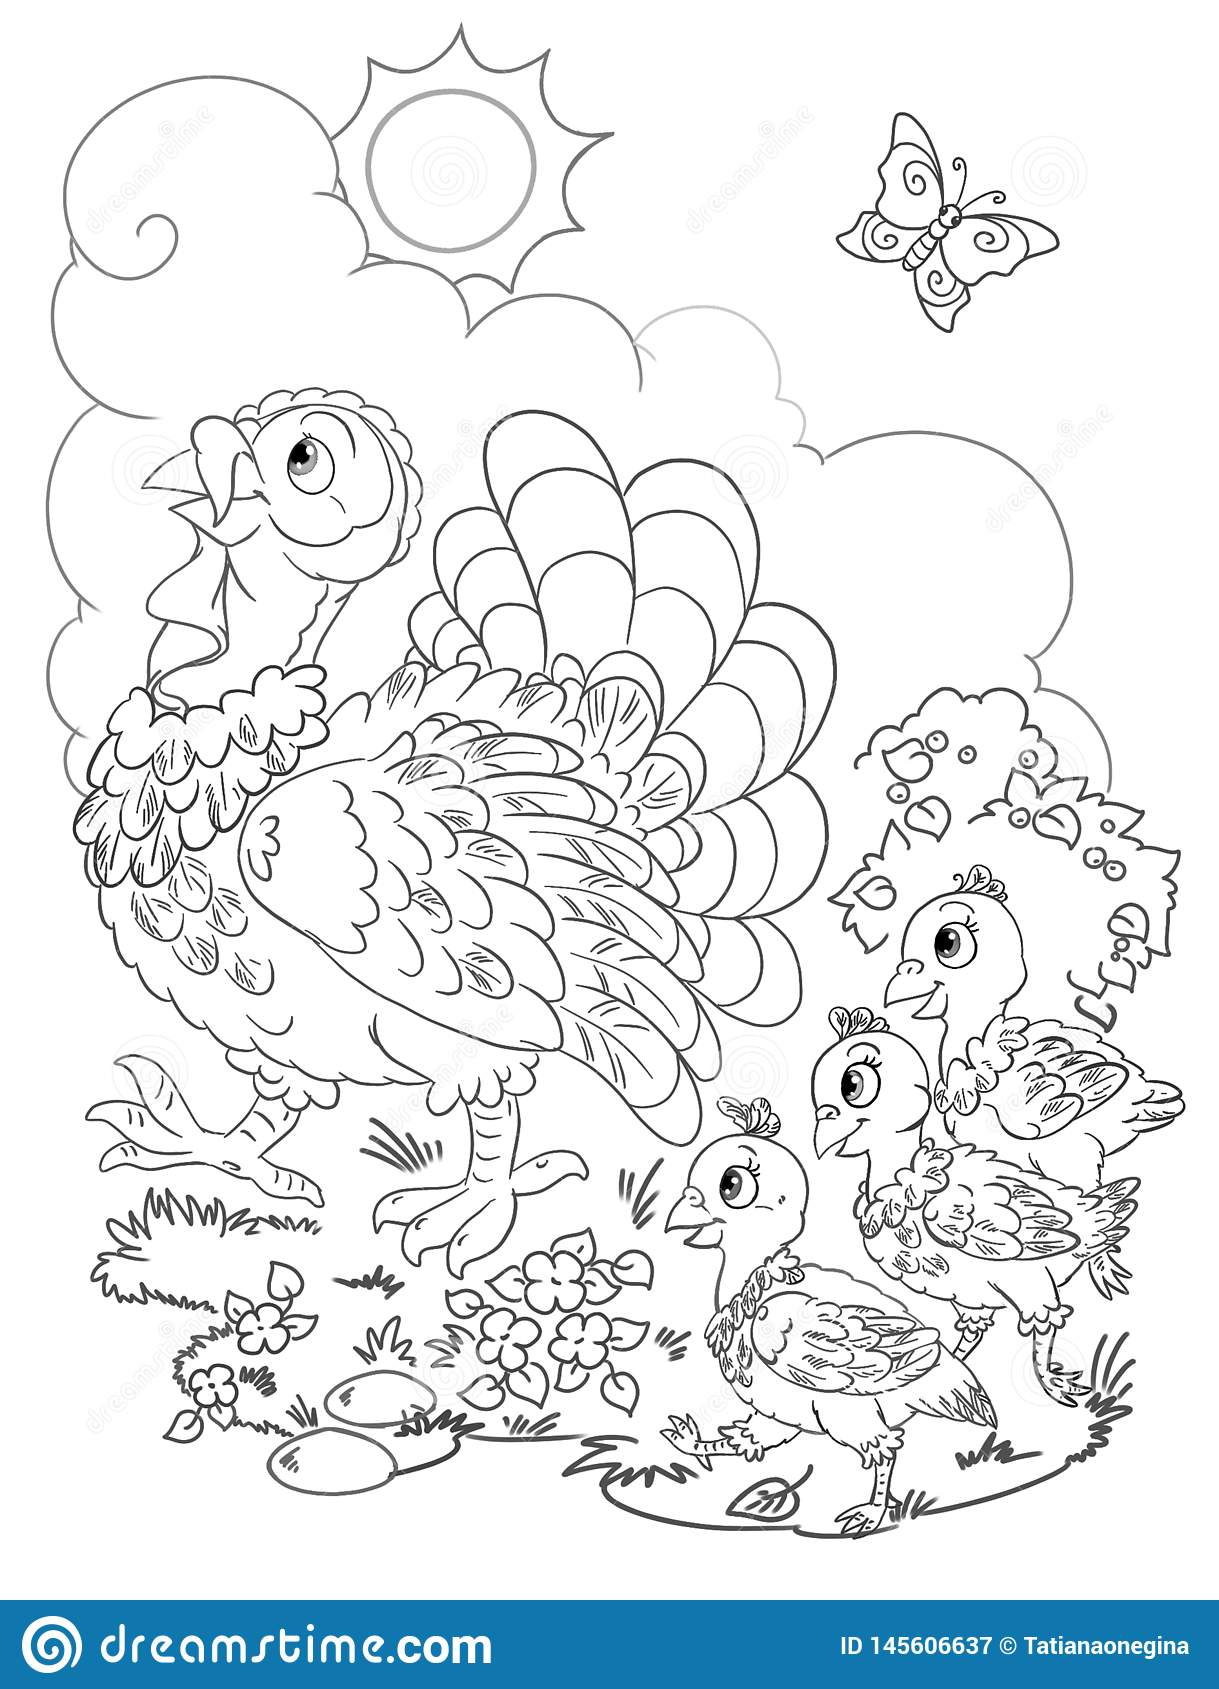 Family color page - Coloring pages for kids - Family, People and ... | 1689x1219